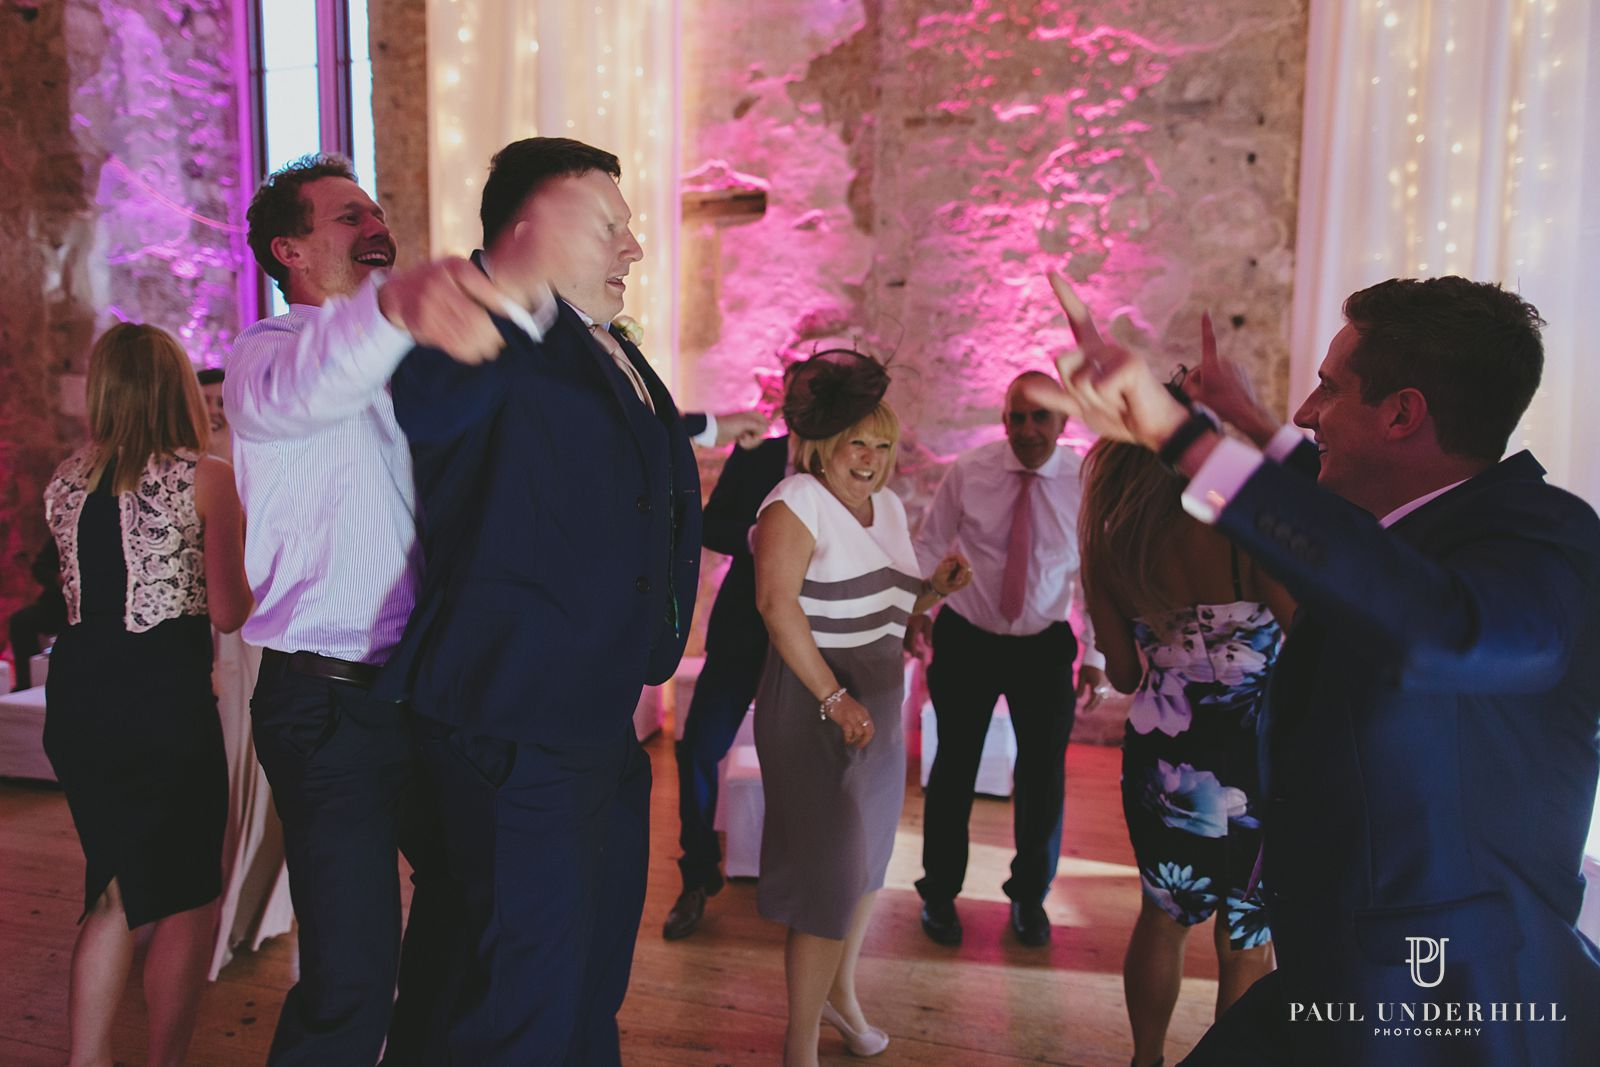 Guests having fun Dorset wedding